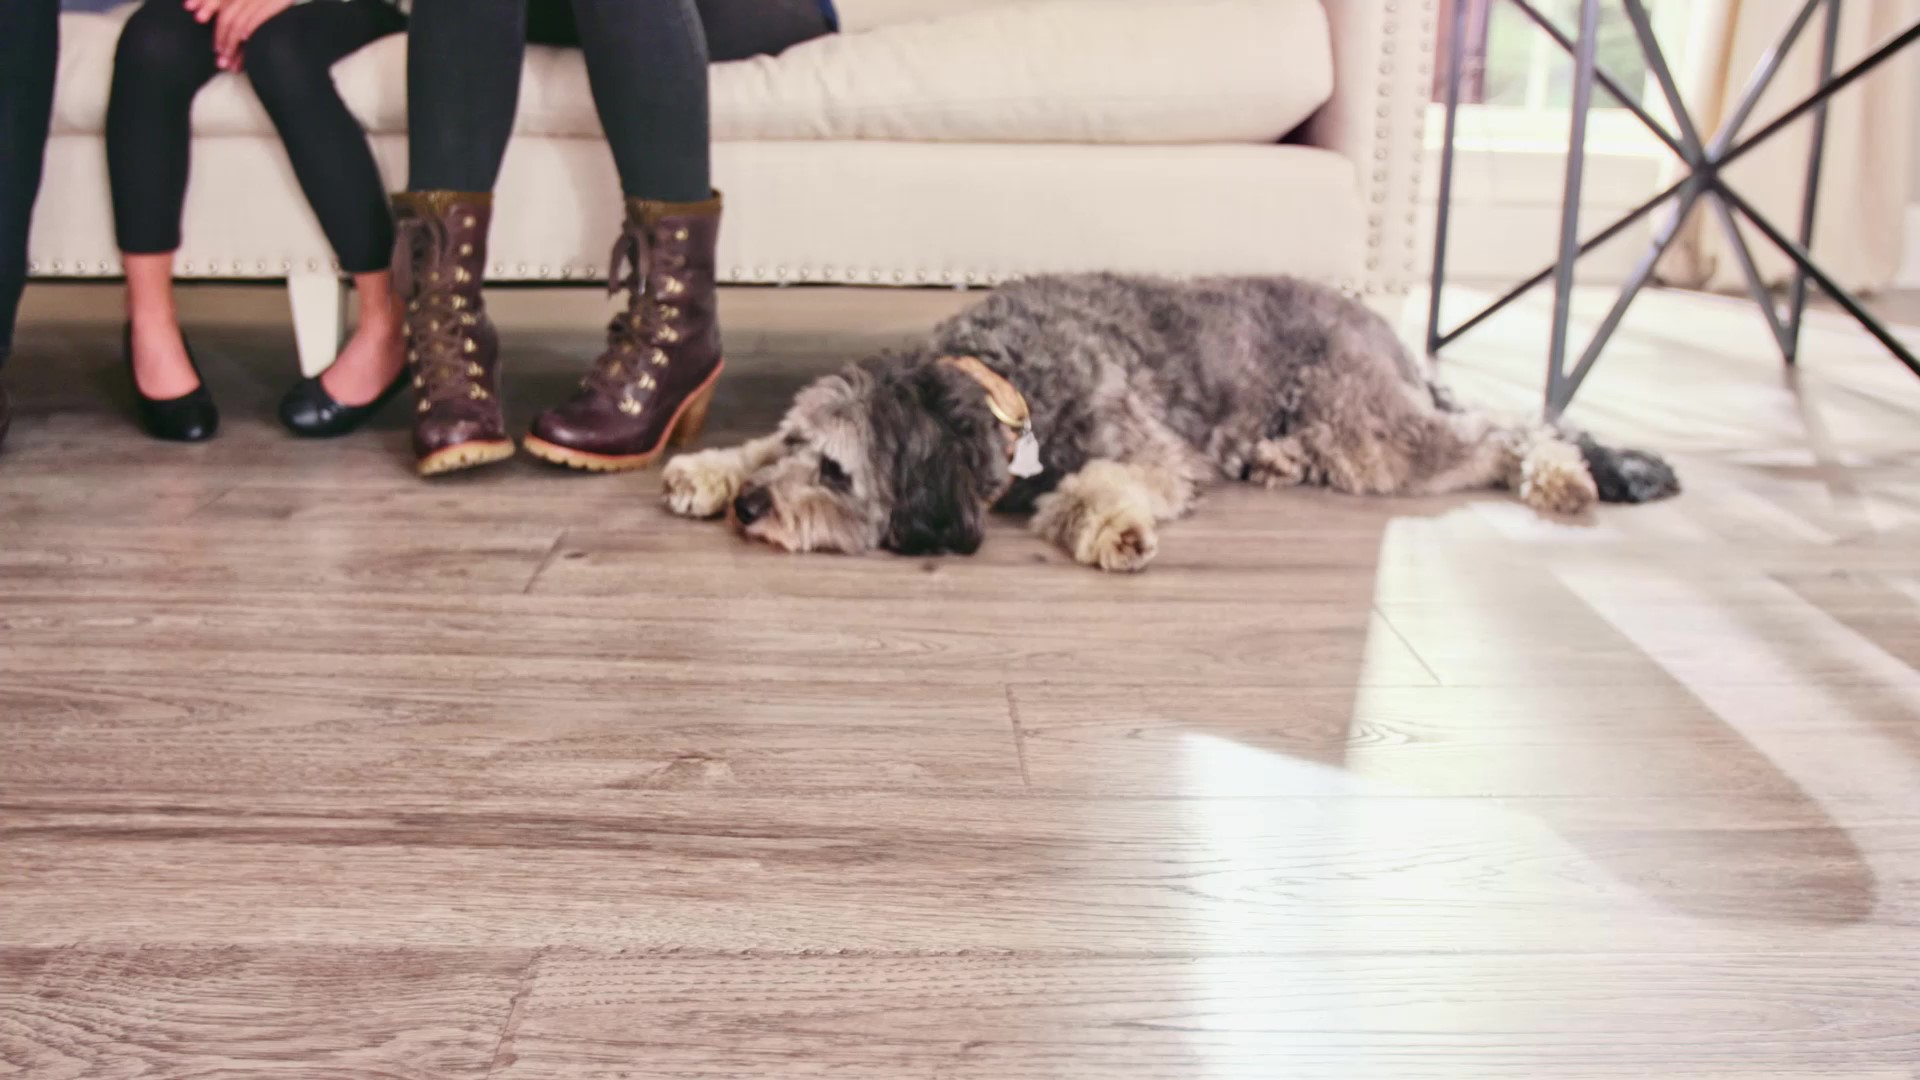 Wood flooring, dog sleeping